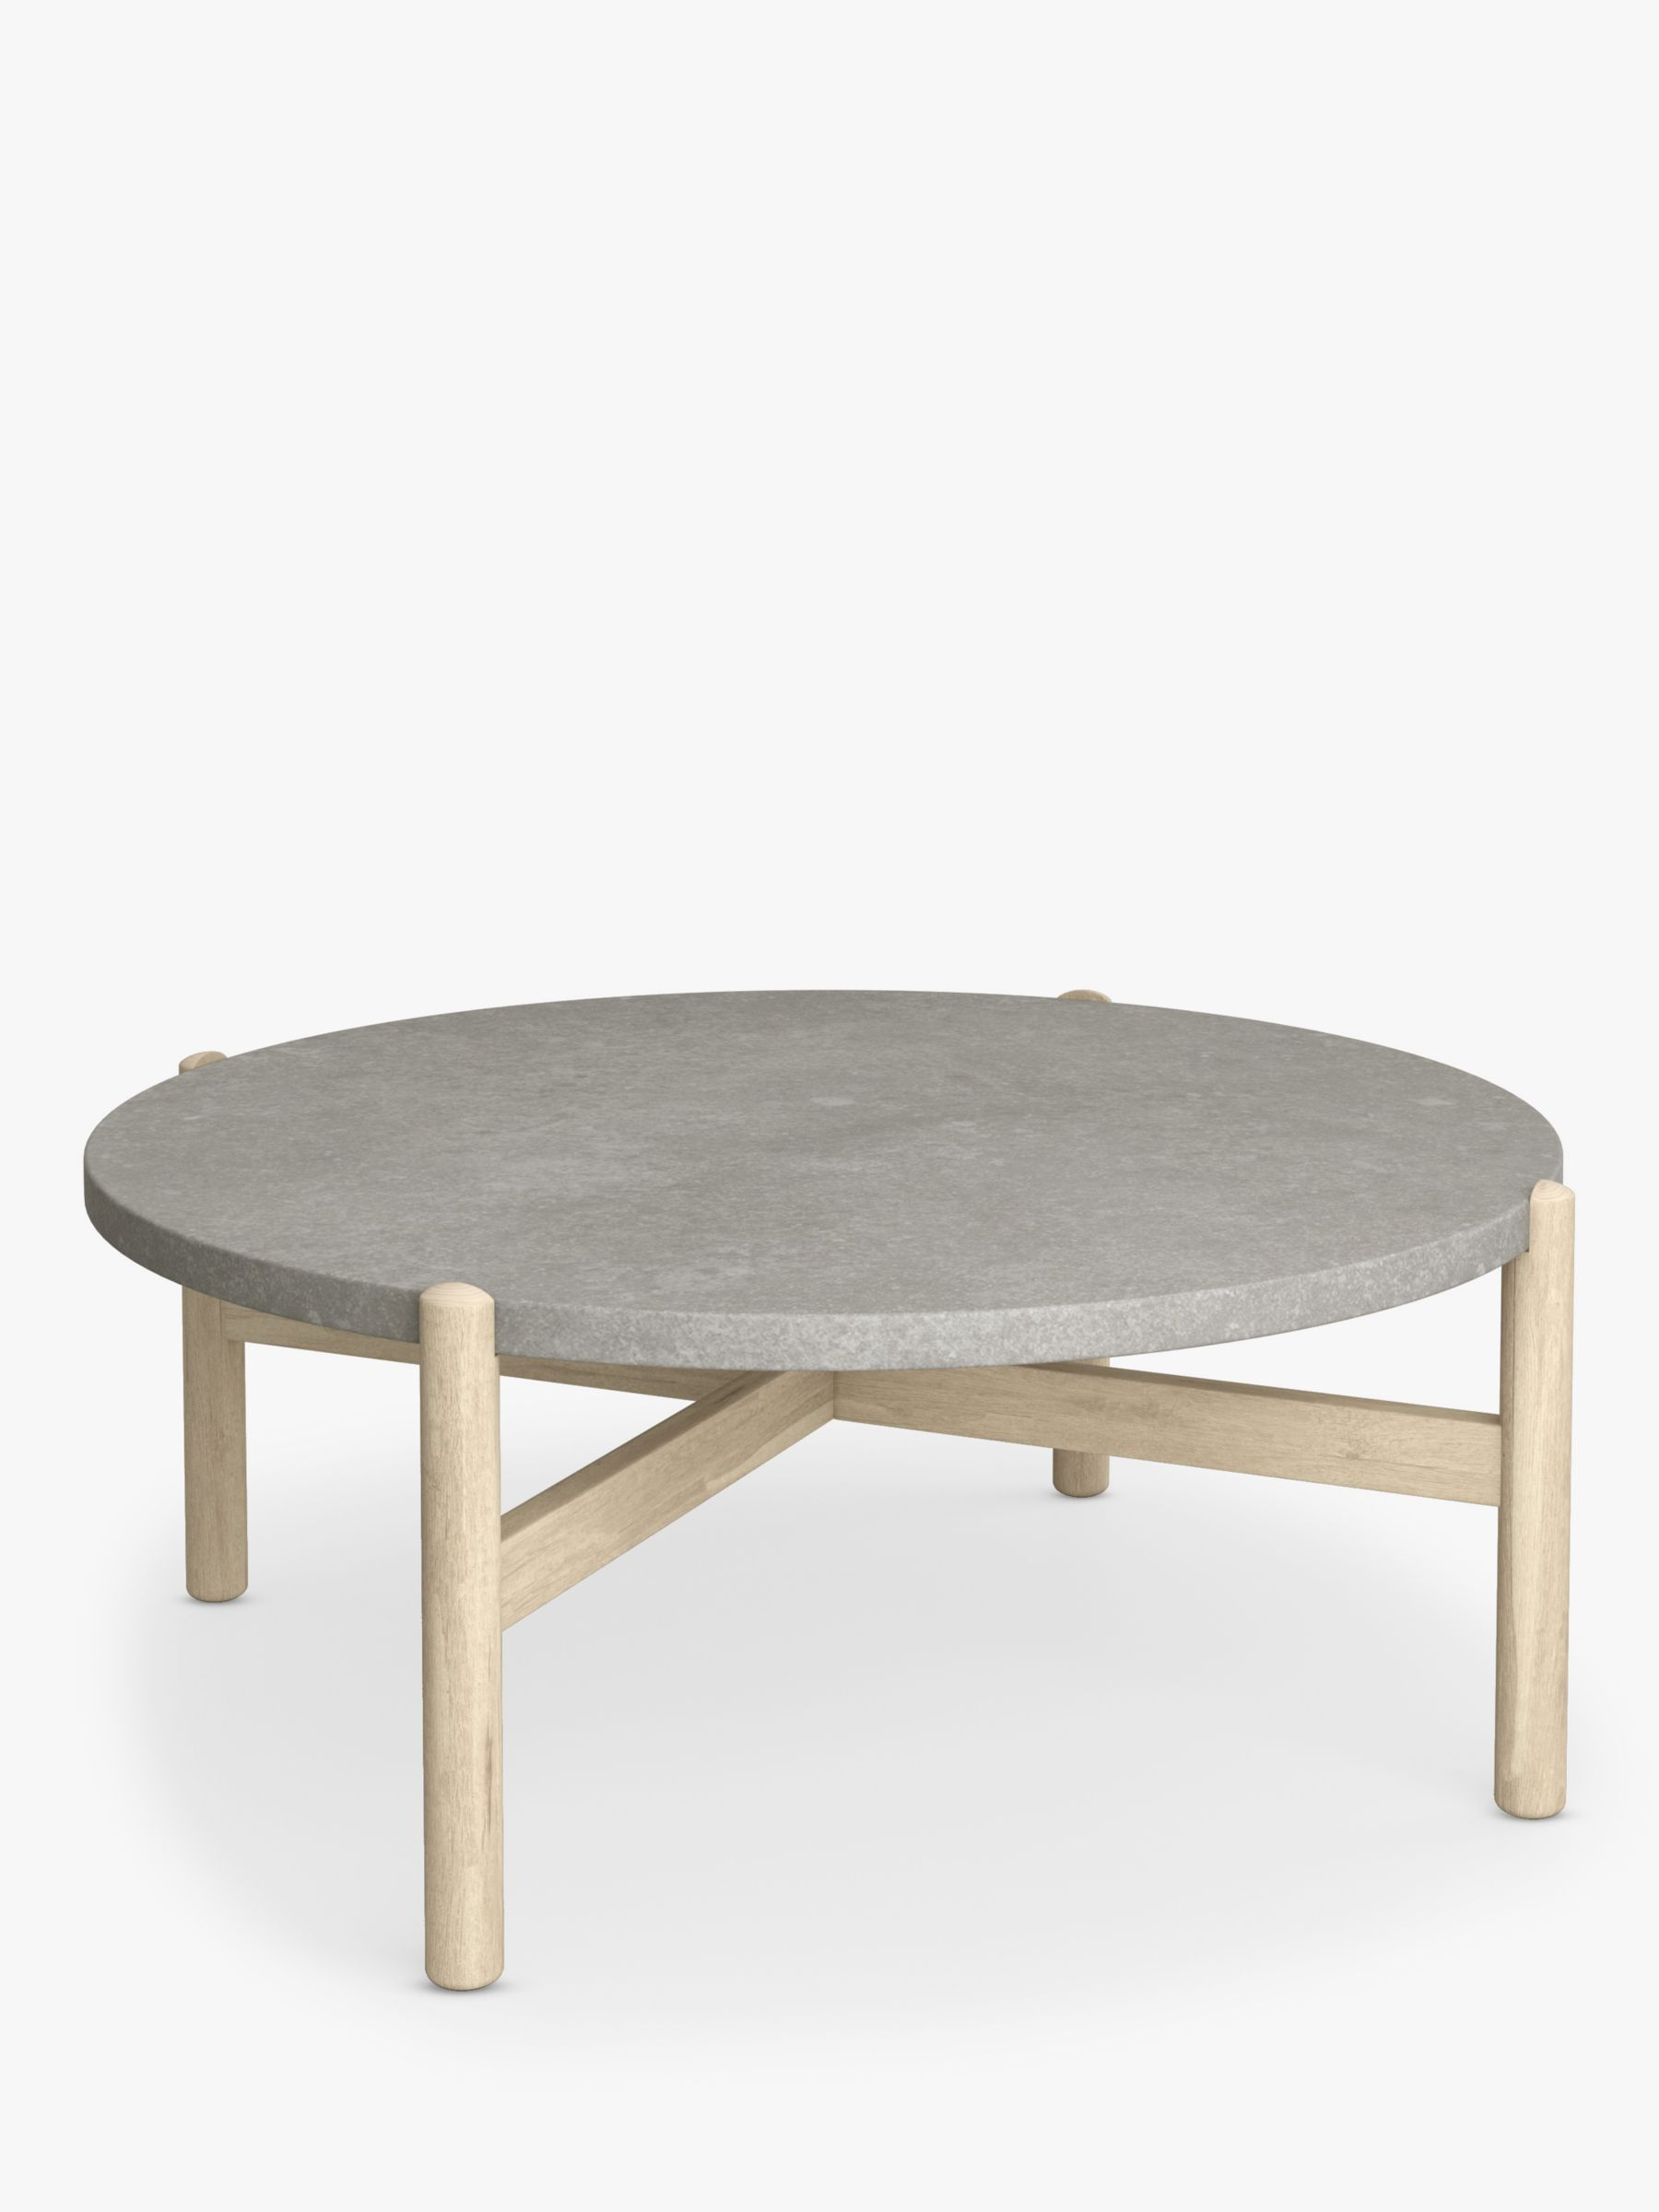 john lewis partners cradle round garden coffee table fsc certified acacia wood